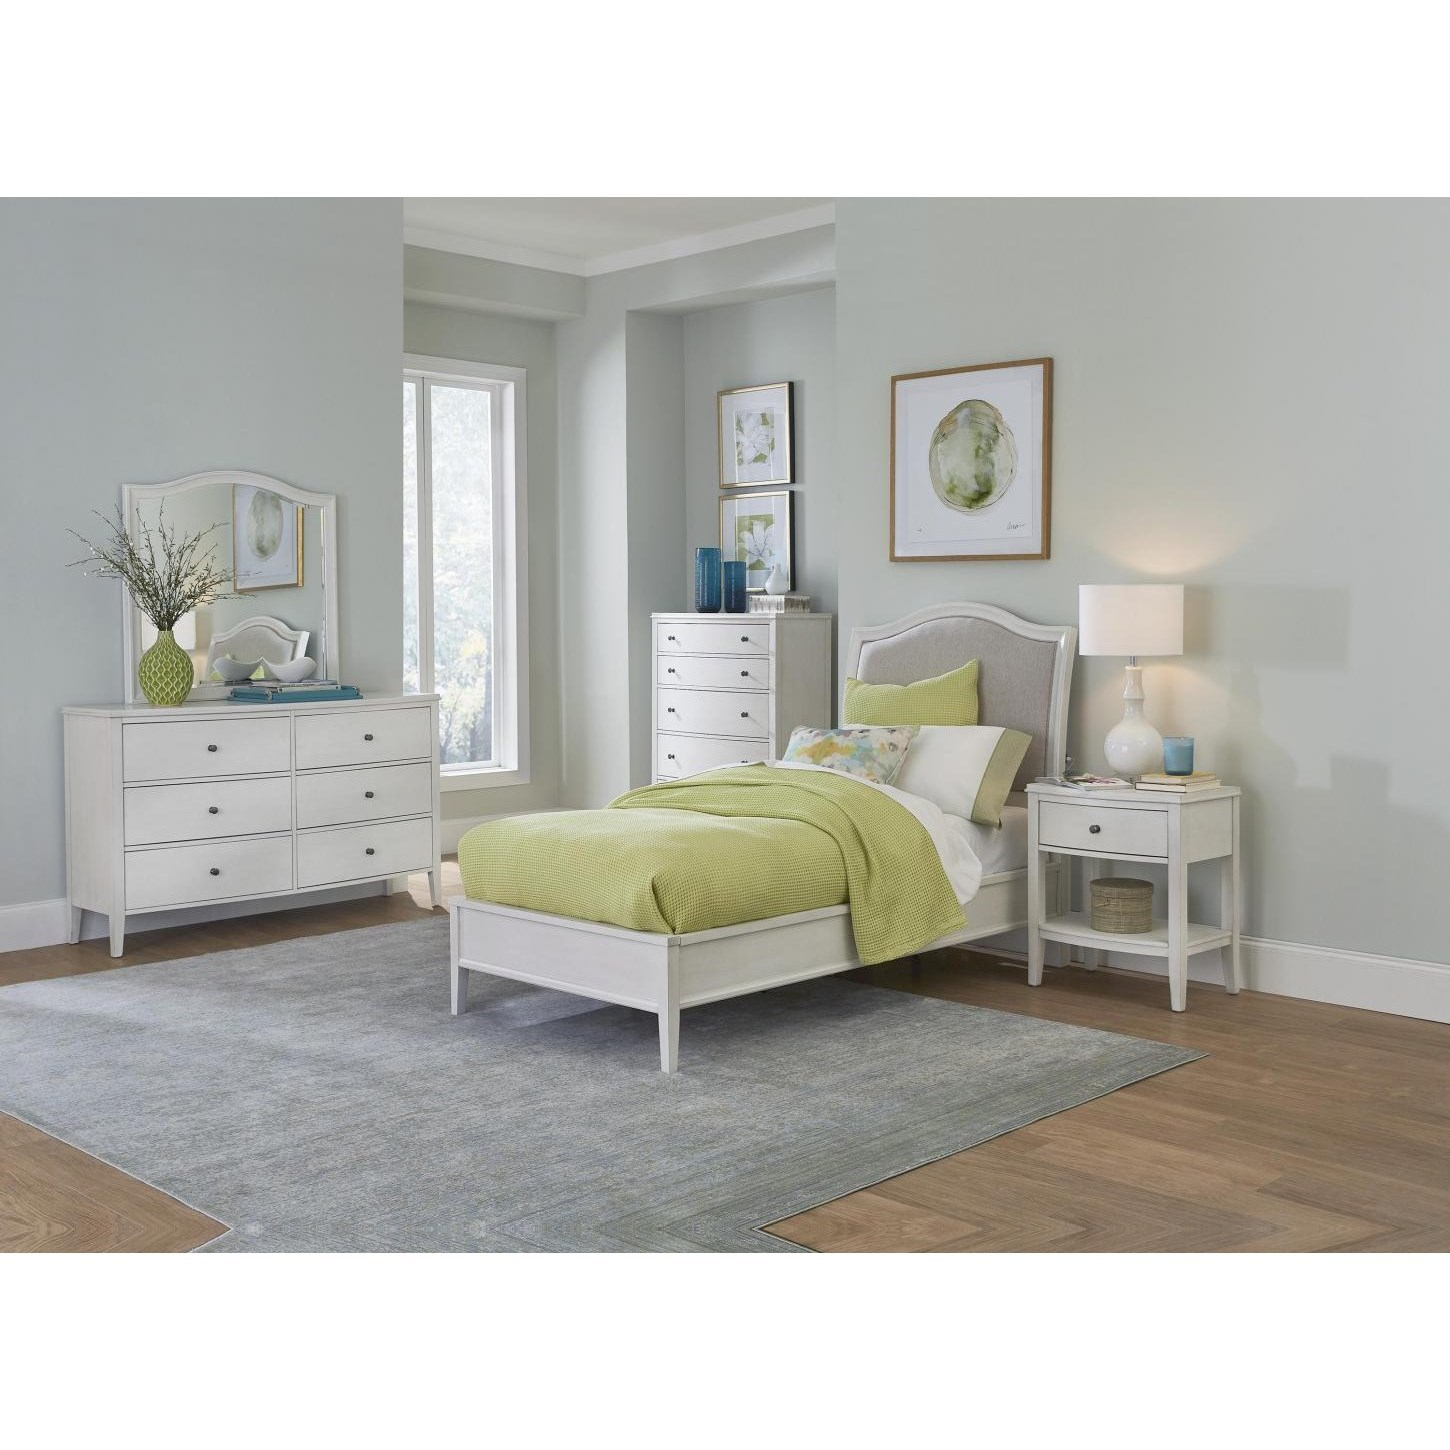 Charlotte  Twin Bedroom Group  by Aspenhome at Stoney Creek Furniture